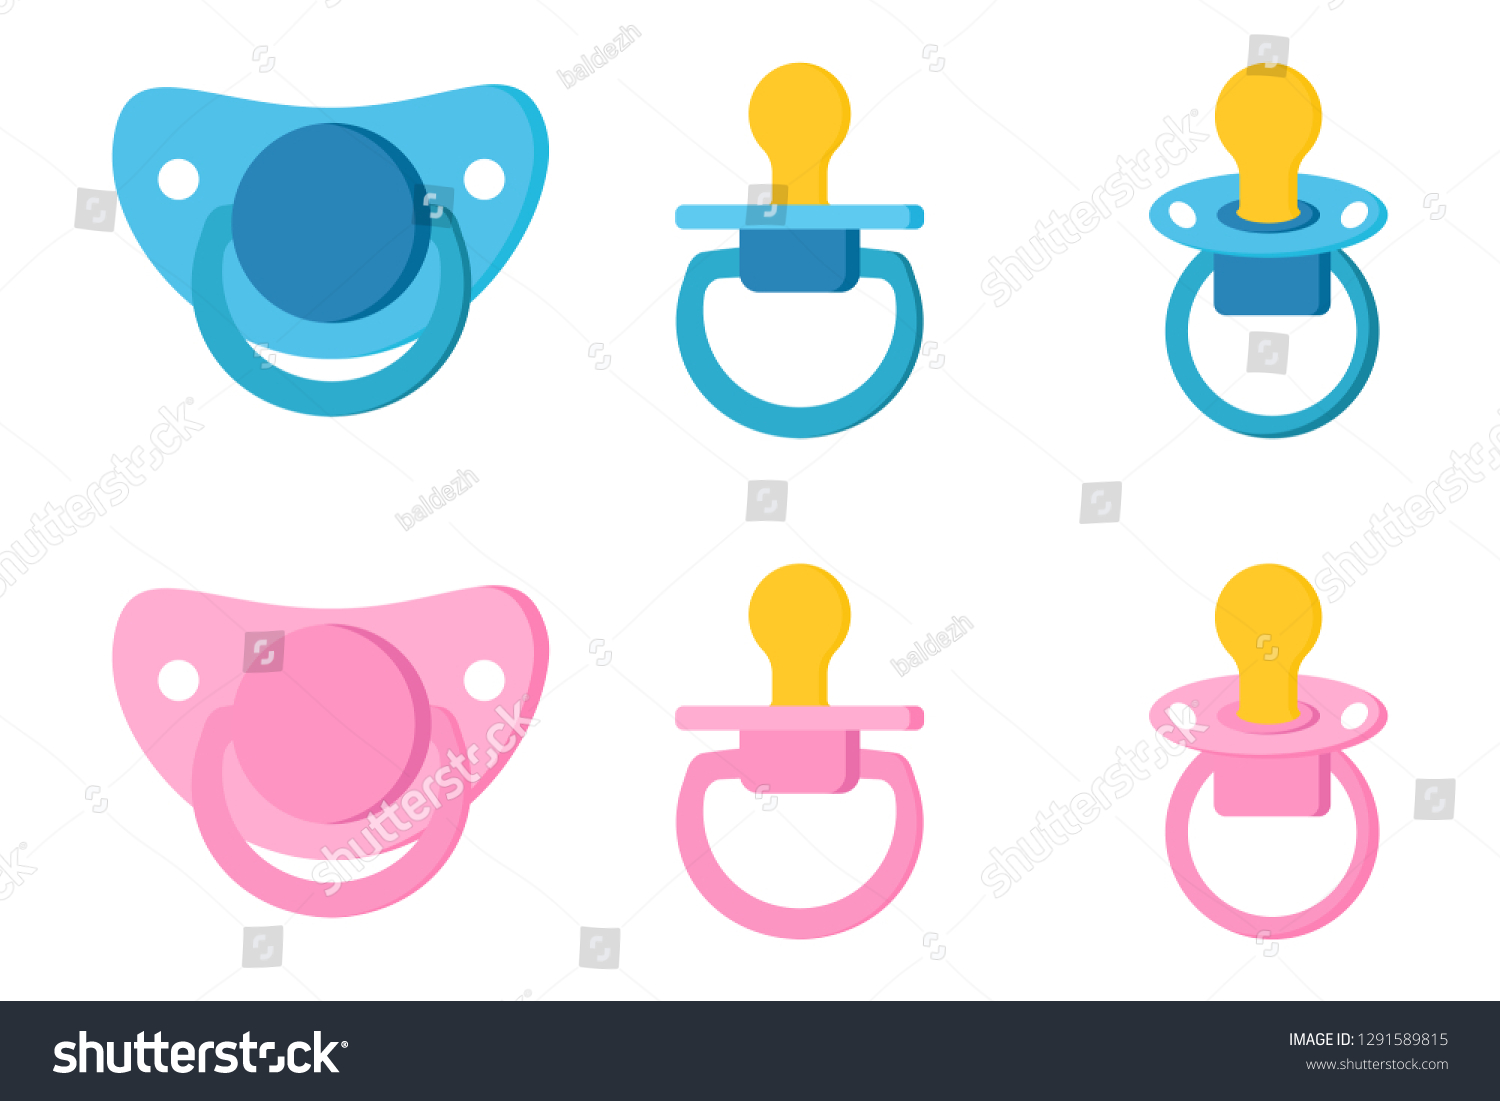 Newborn Babies For Dummies Set Icons Pacifier Baby Dummy Care Stock Vector Royalty